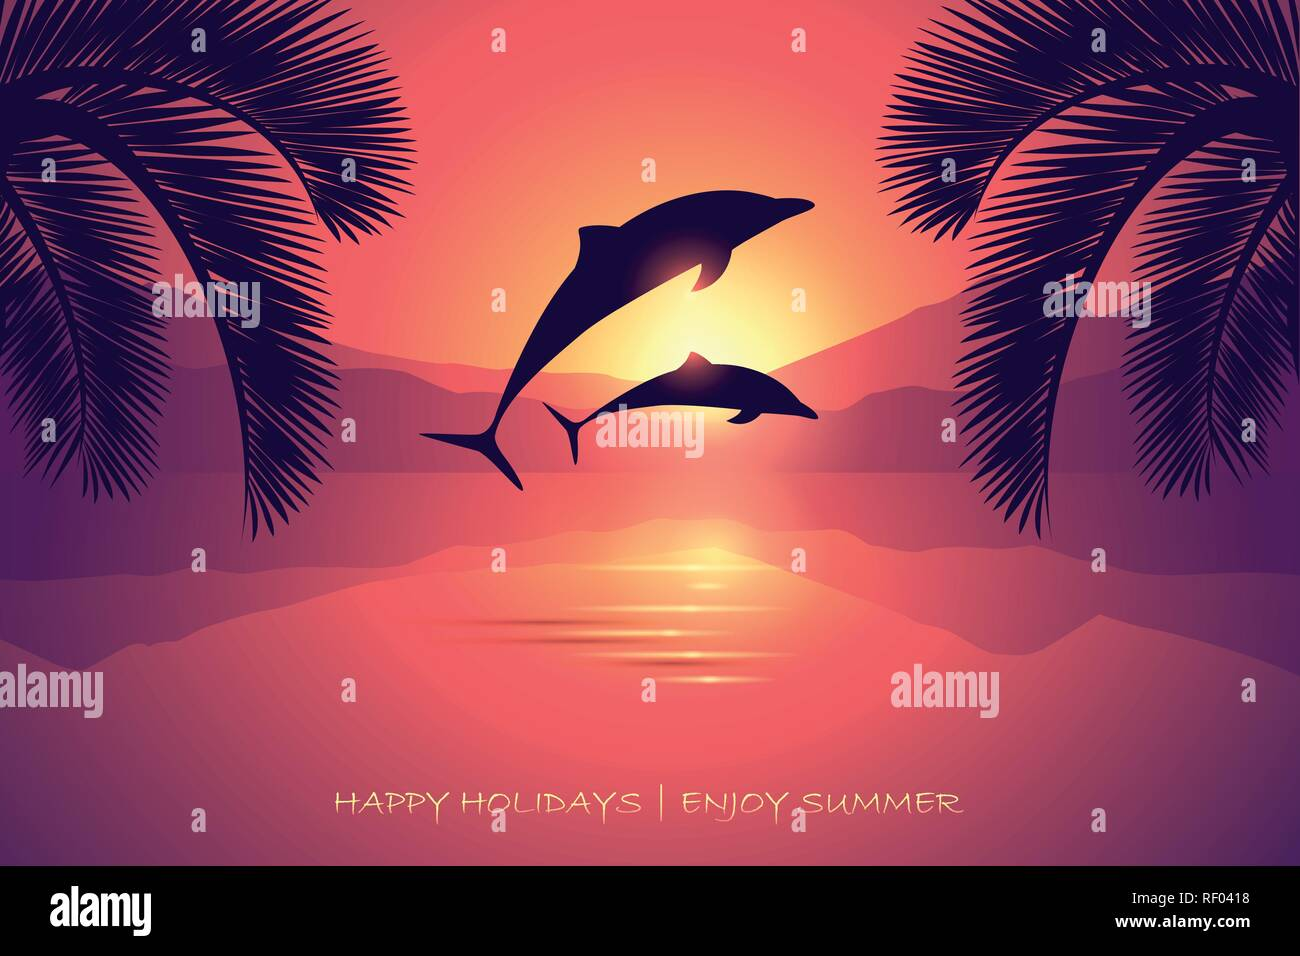 summer holiday postcard sunset sea dolphins and palm vector illustration EPS10 - Stock Vector